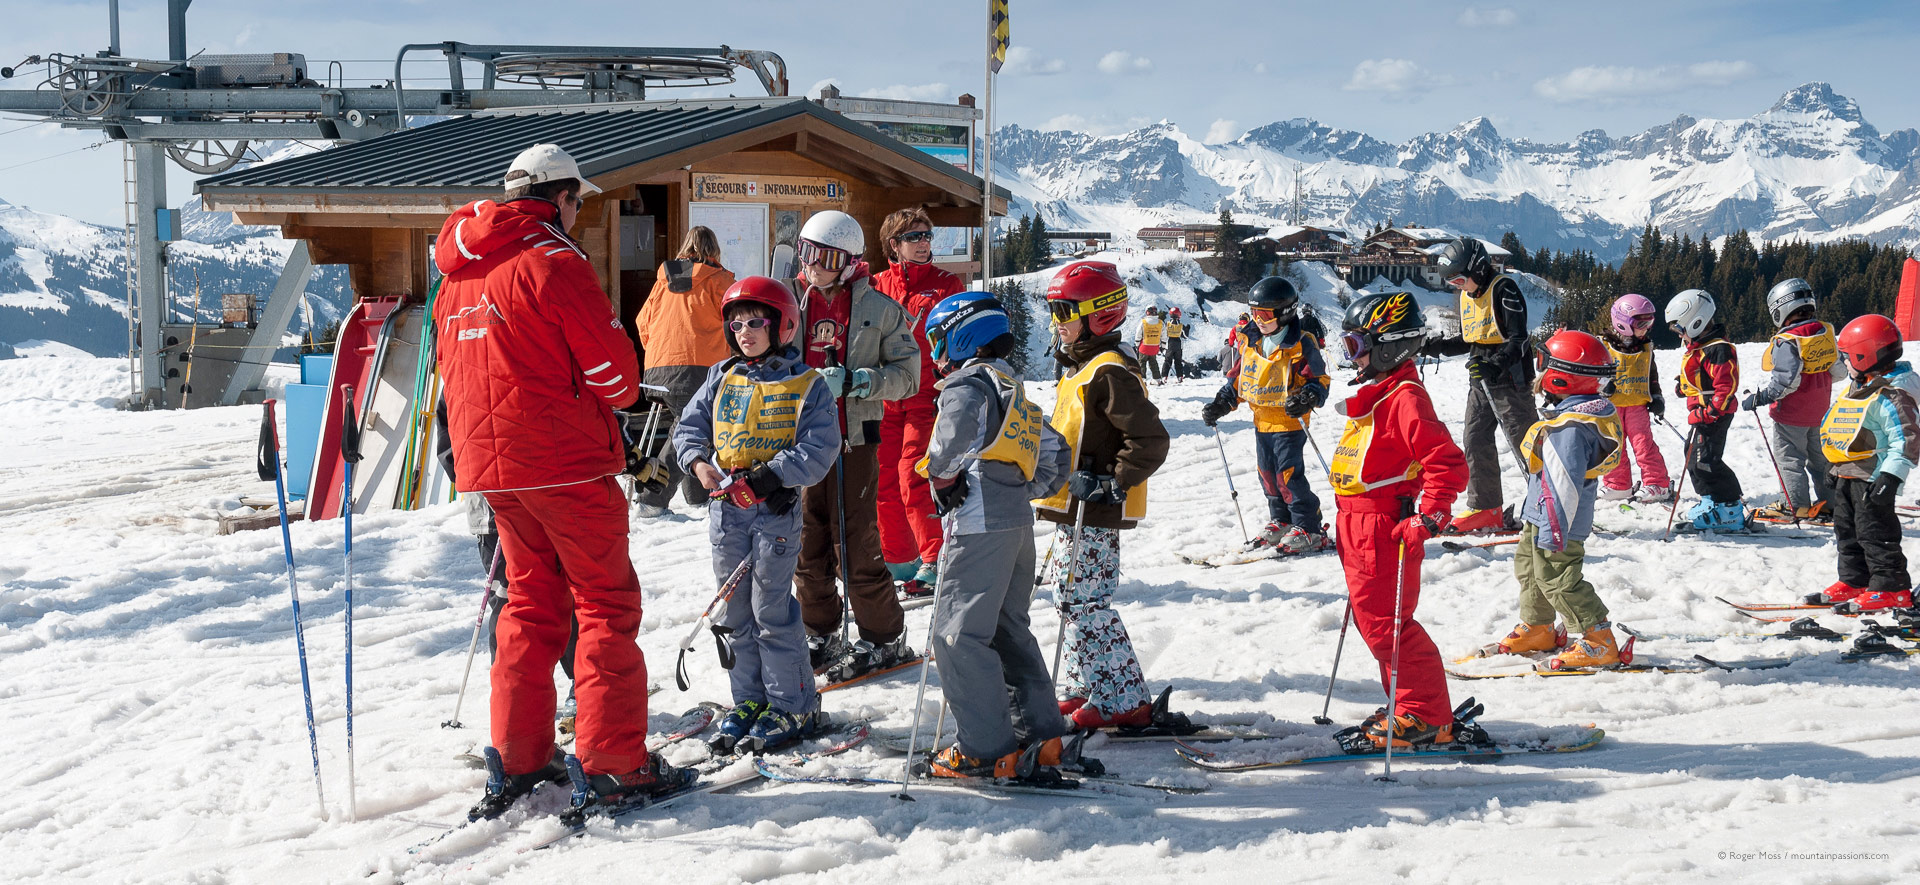 Young skiers gathering for ski lesson with ski instructor and mountains in background